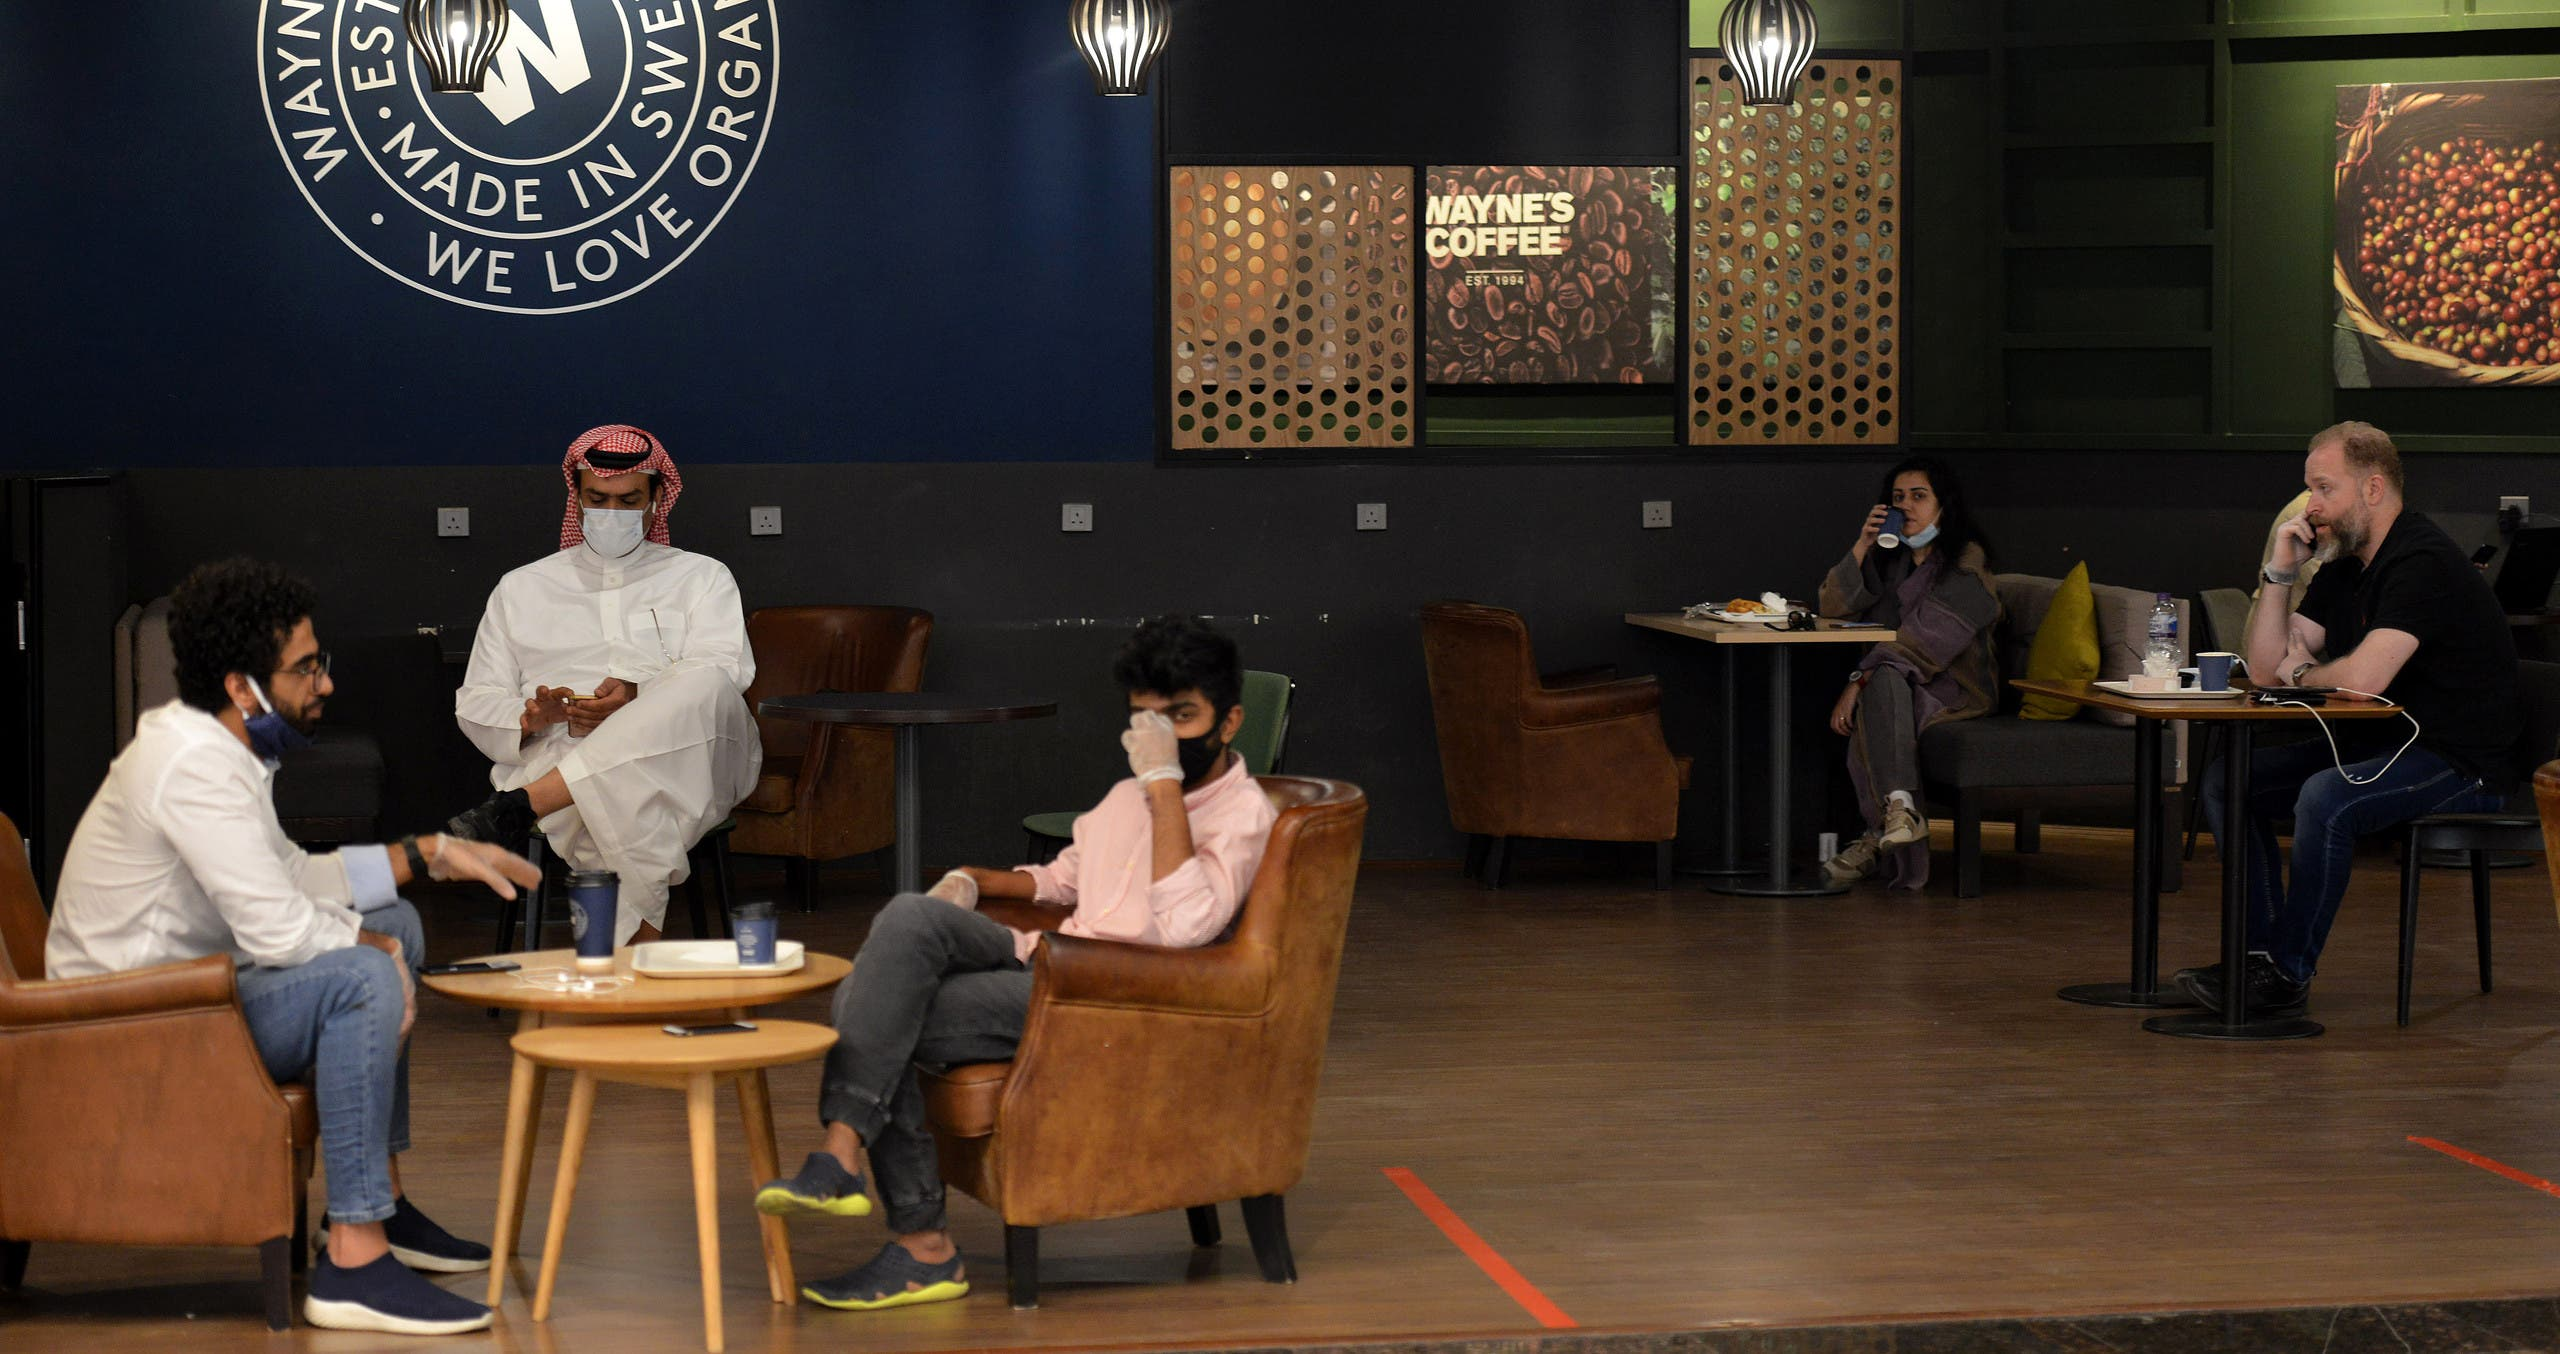 Saudi Arabians at a cafe in the mall in Riyadh, June 4, 2020. (AFP)